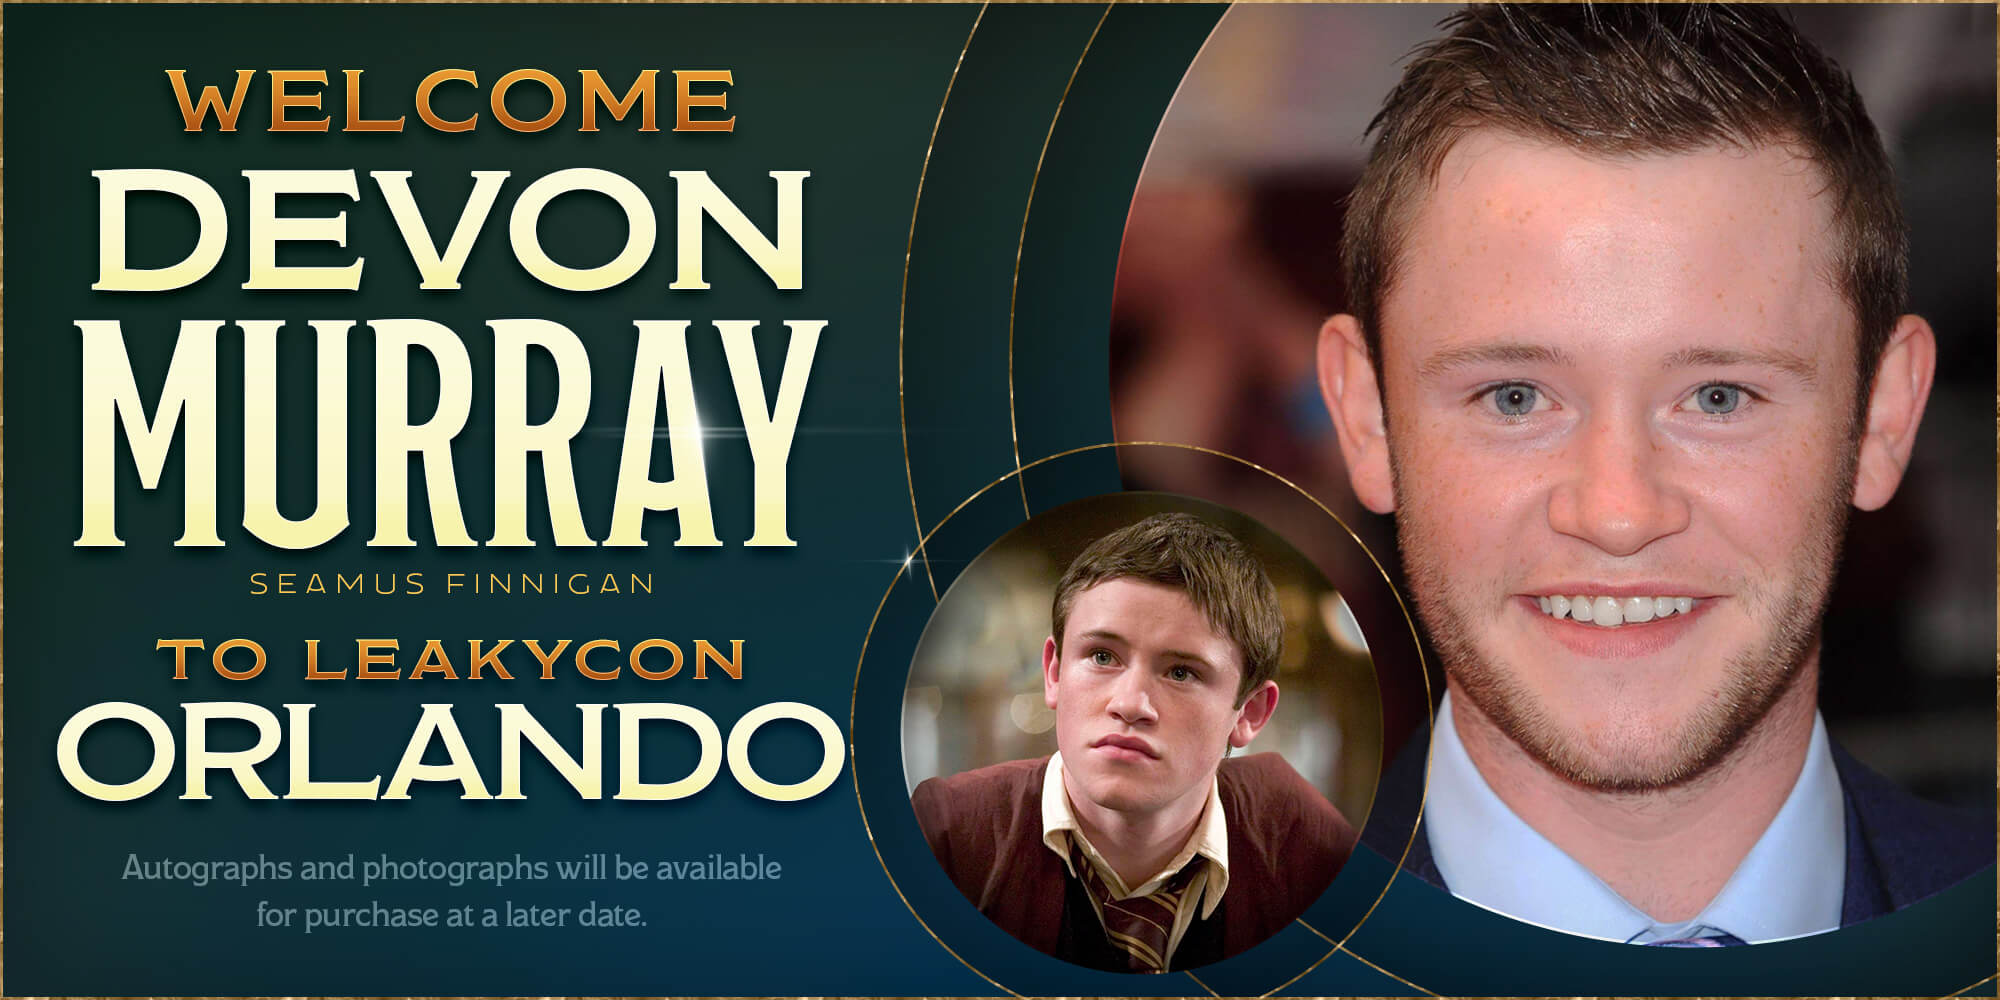 Harry Potter Events Near Me 2020.Tickets For Leakycon 2020 Orlando In Orlando From Showclix